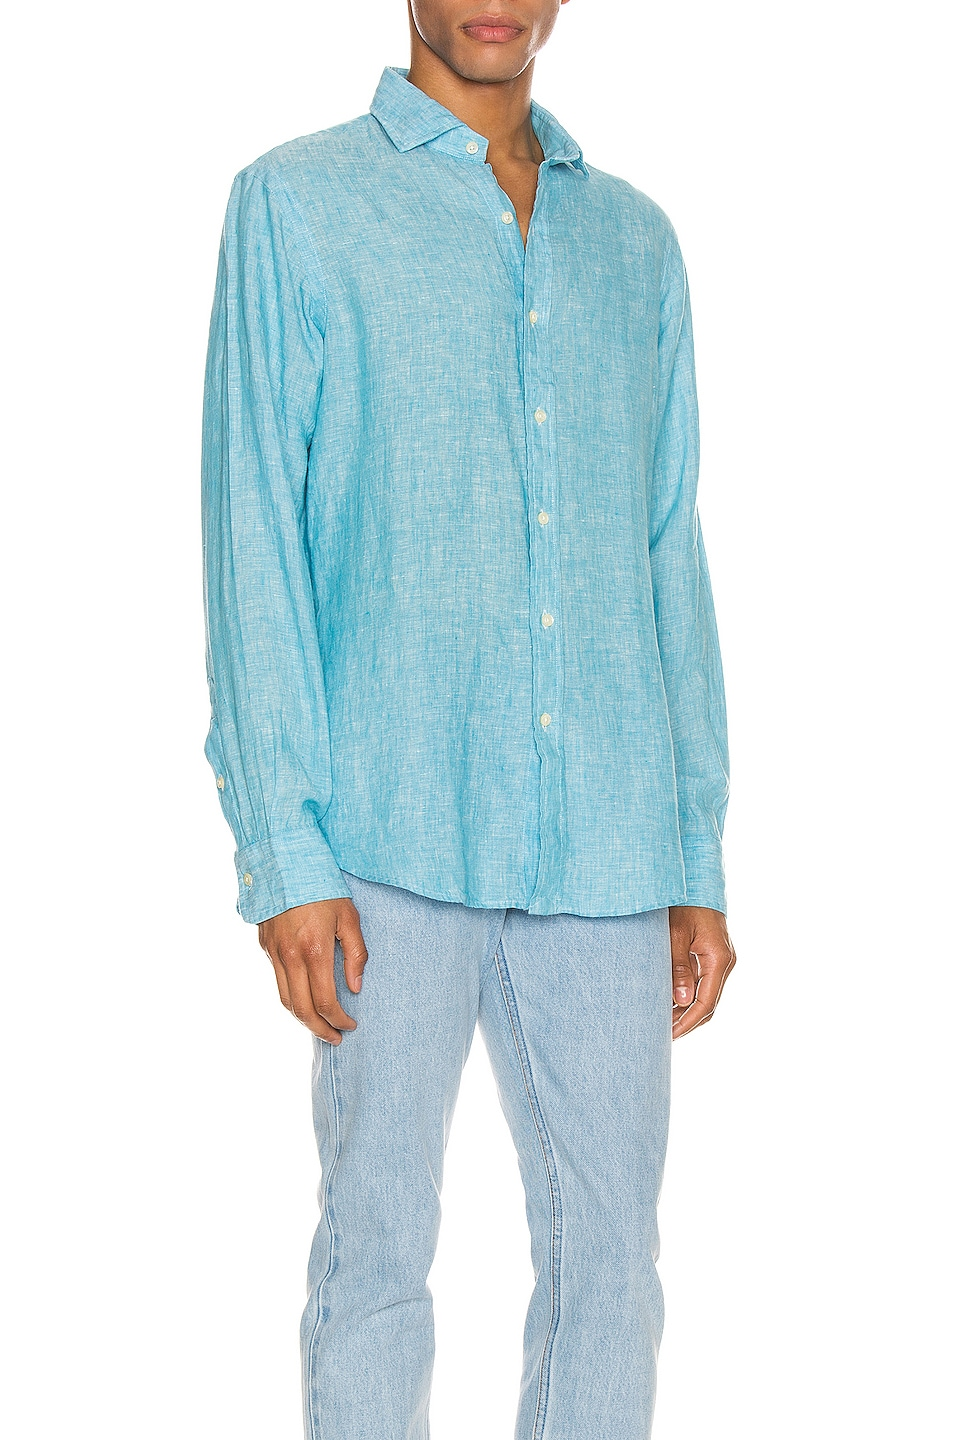 Image 2 of Polo Ralph Lauren Linen Chambray Long Sleeve Button Up Shirt in 4366F Turquoise